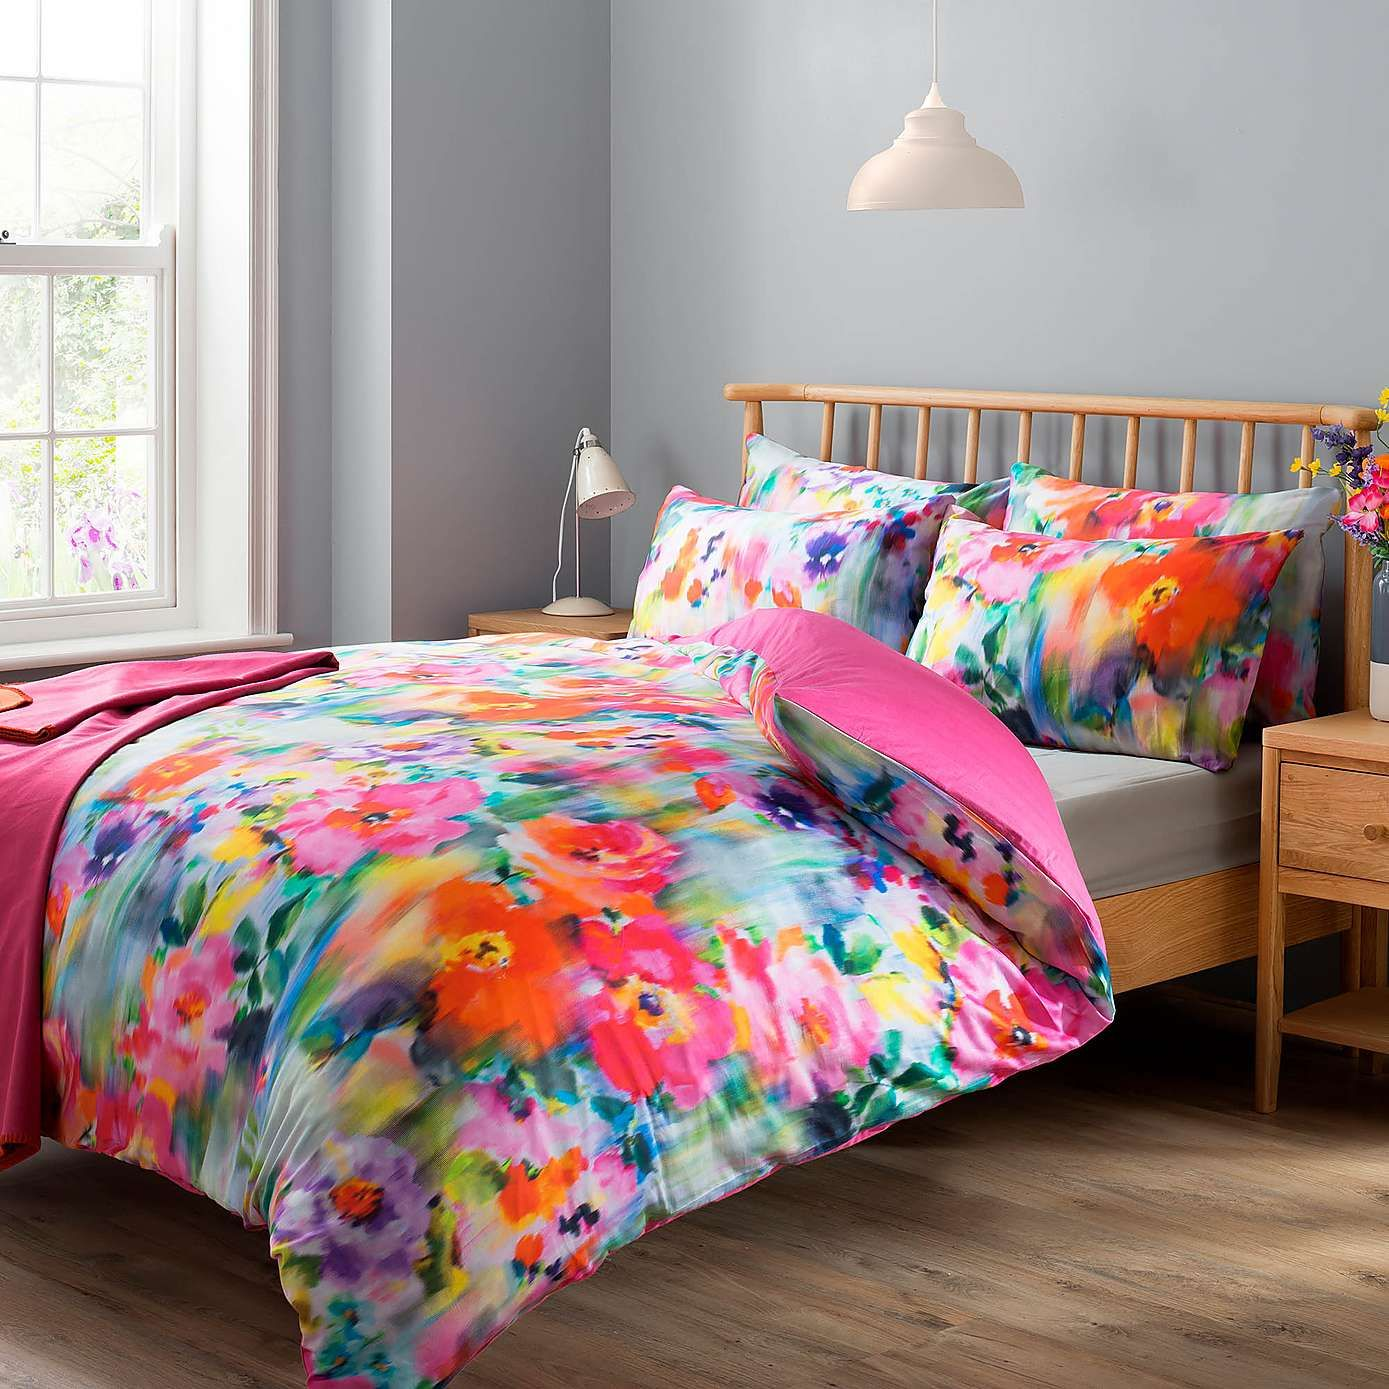 Summer Digitally Printed 100 Cotton Duvet Cover and